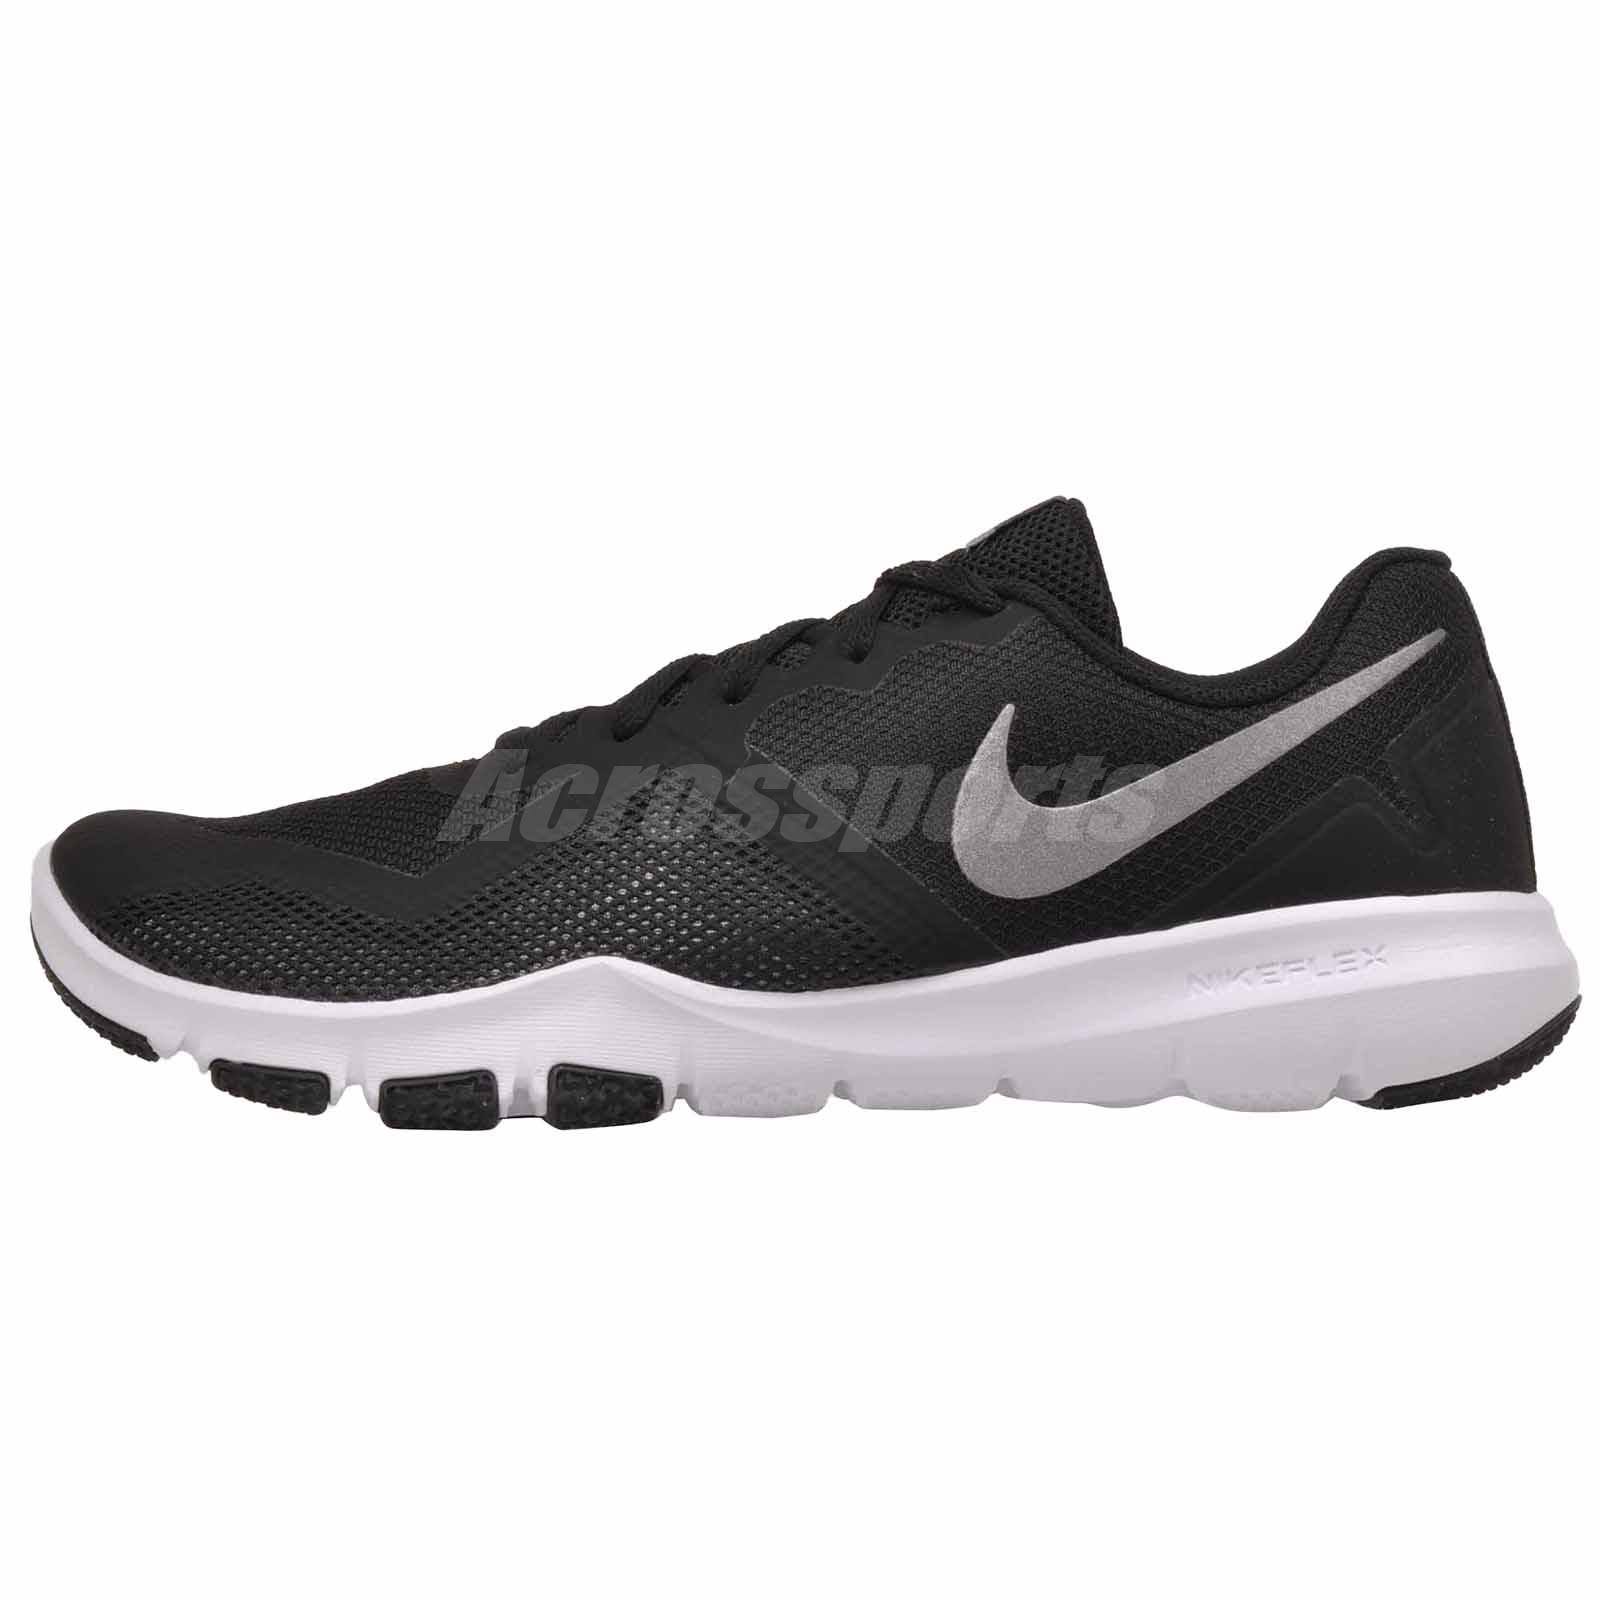 1fcdc26a1c651 Nike Flex Control II 4E Cross Training Mens Wide Shoes Black Grey AQ9712-010